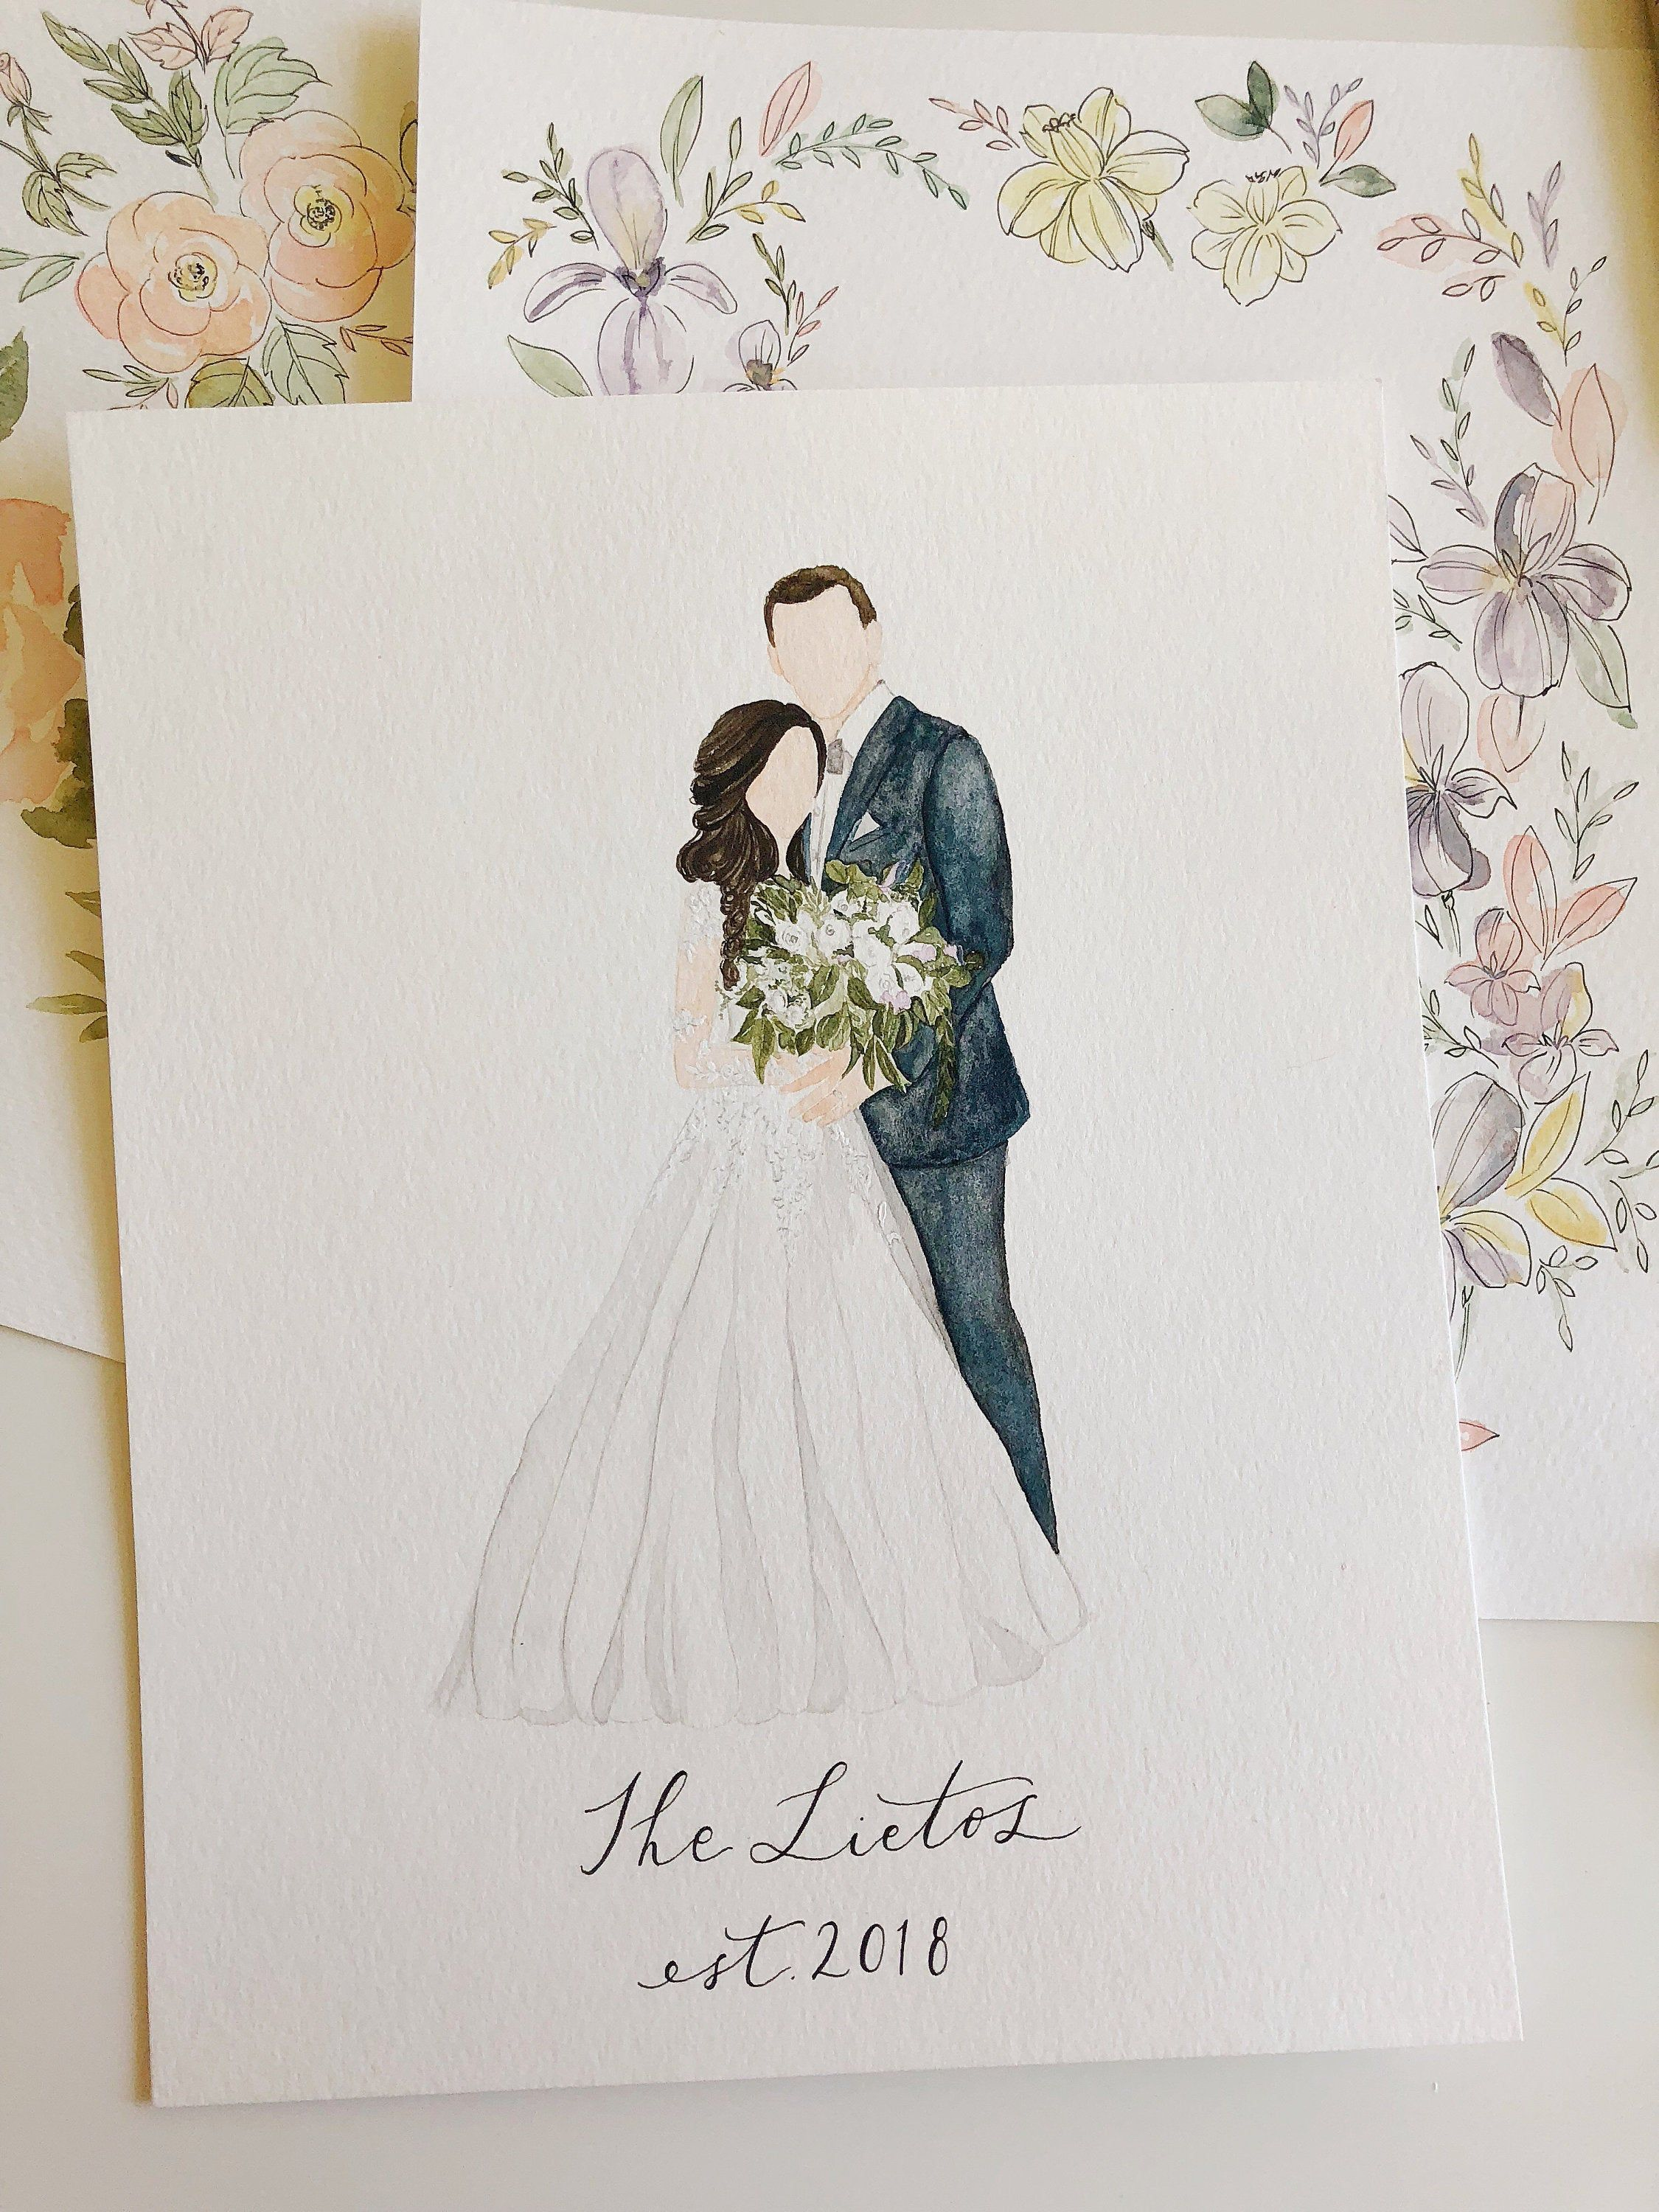 Personalised with Bride and Grooms Names Watercolour Painting of Wedding Venue